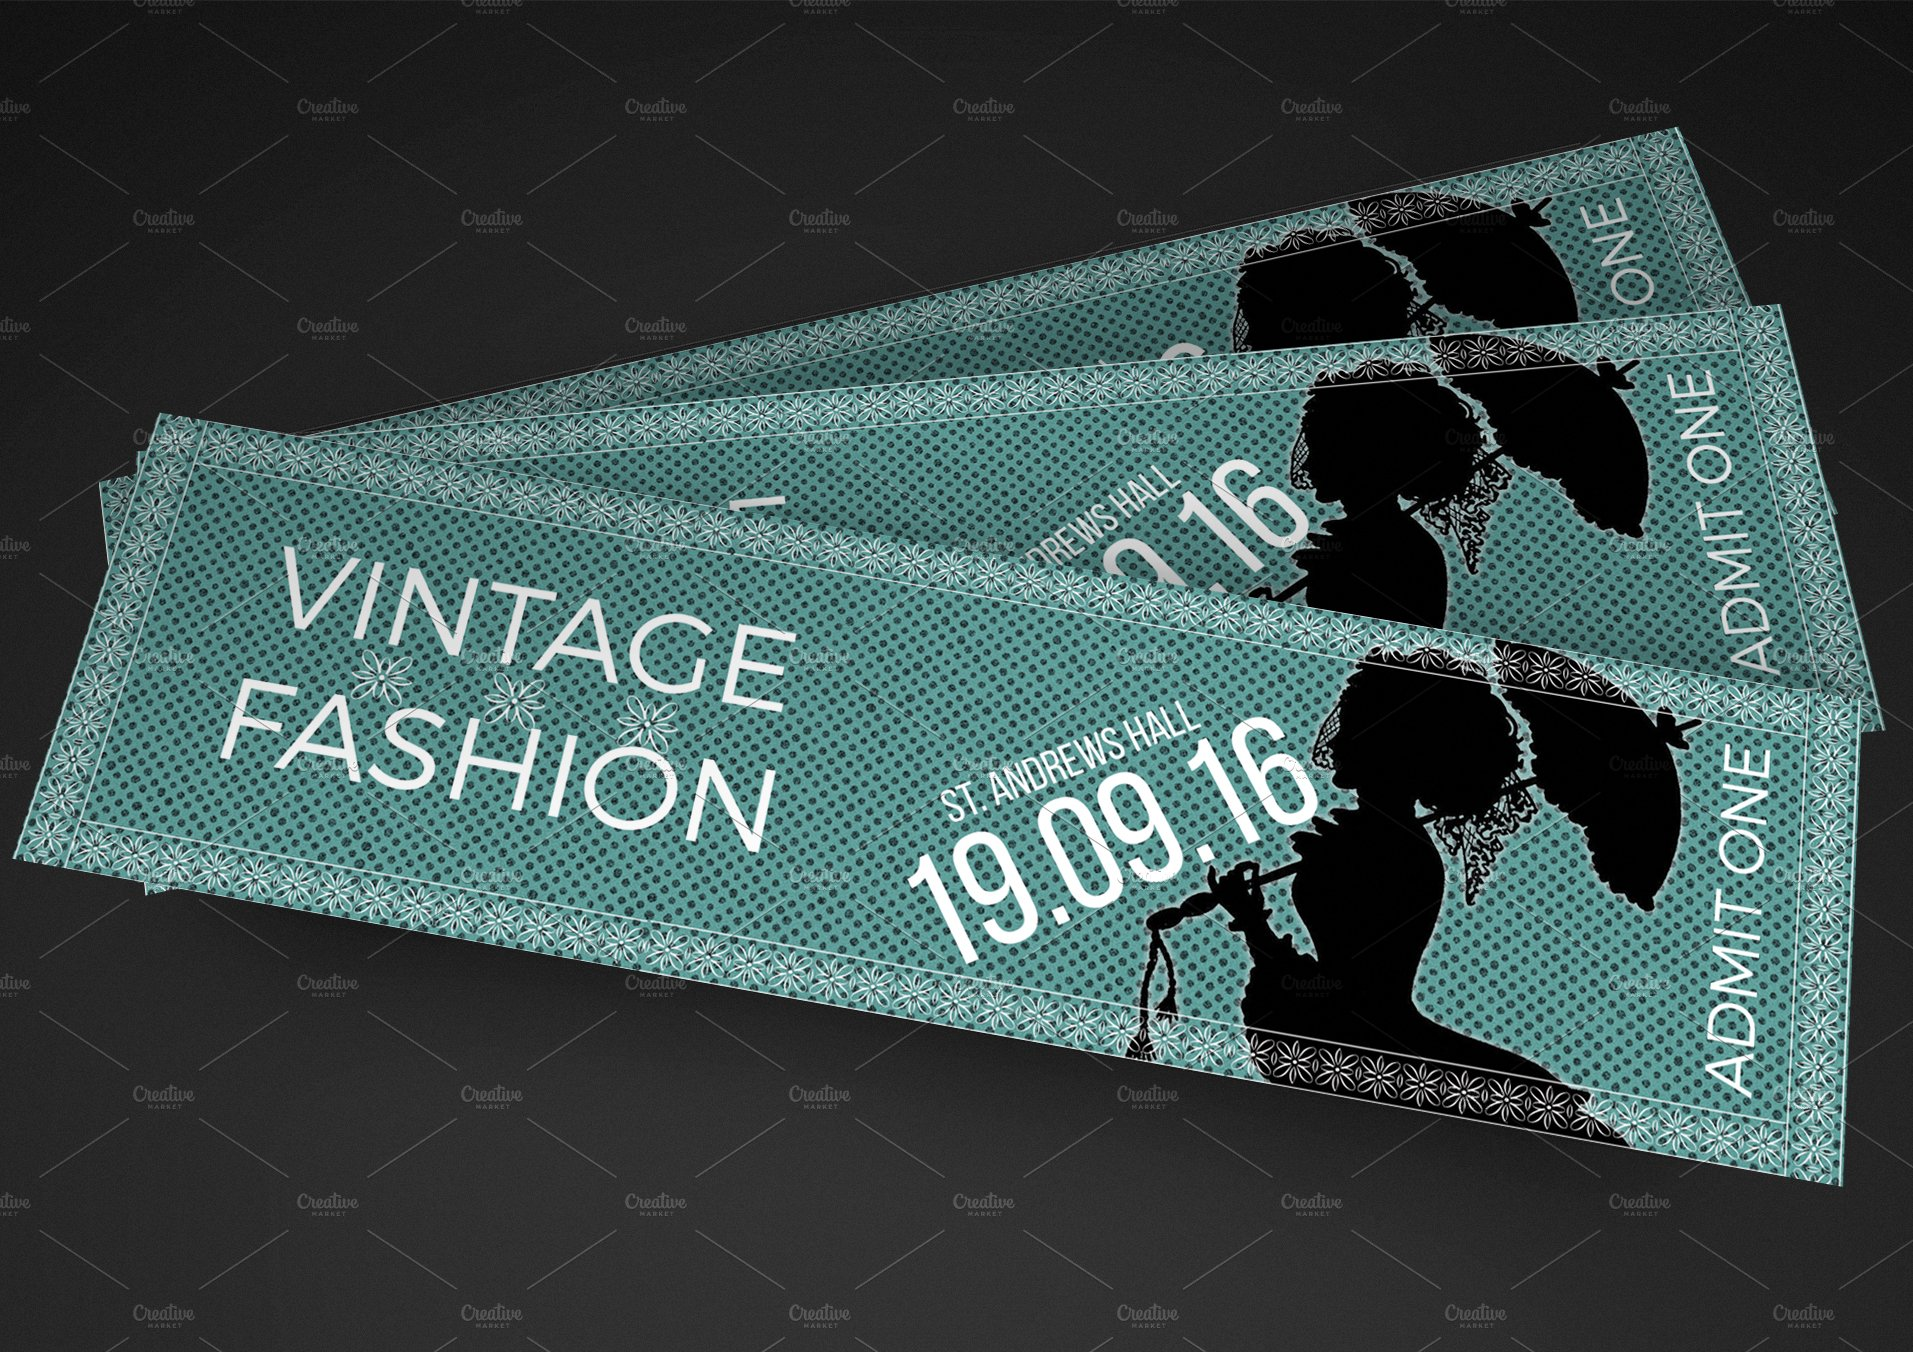 Vintage fashion show ticket invitation templates for Fashion show ticket template